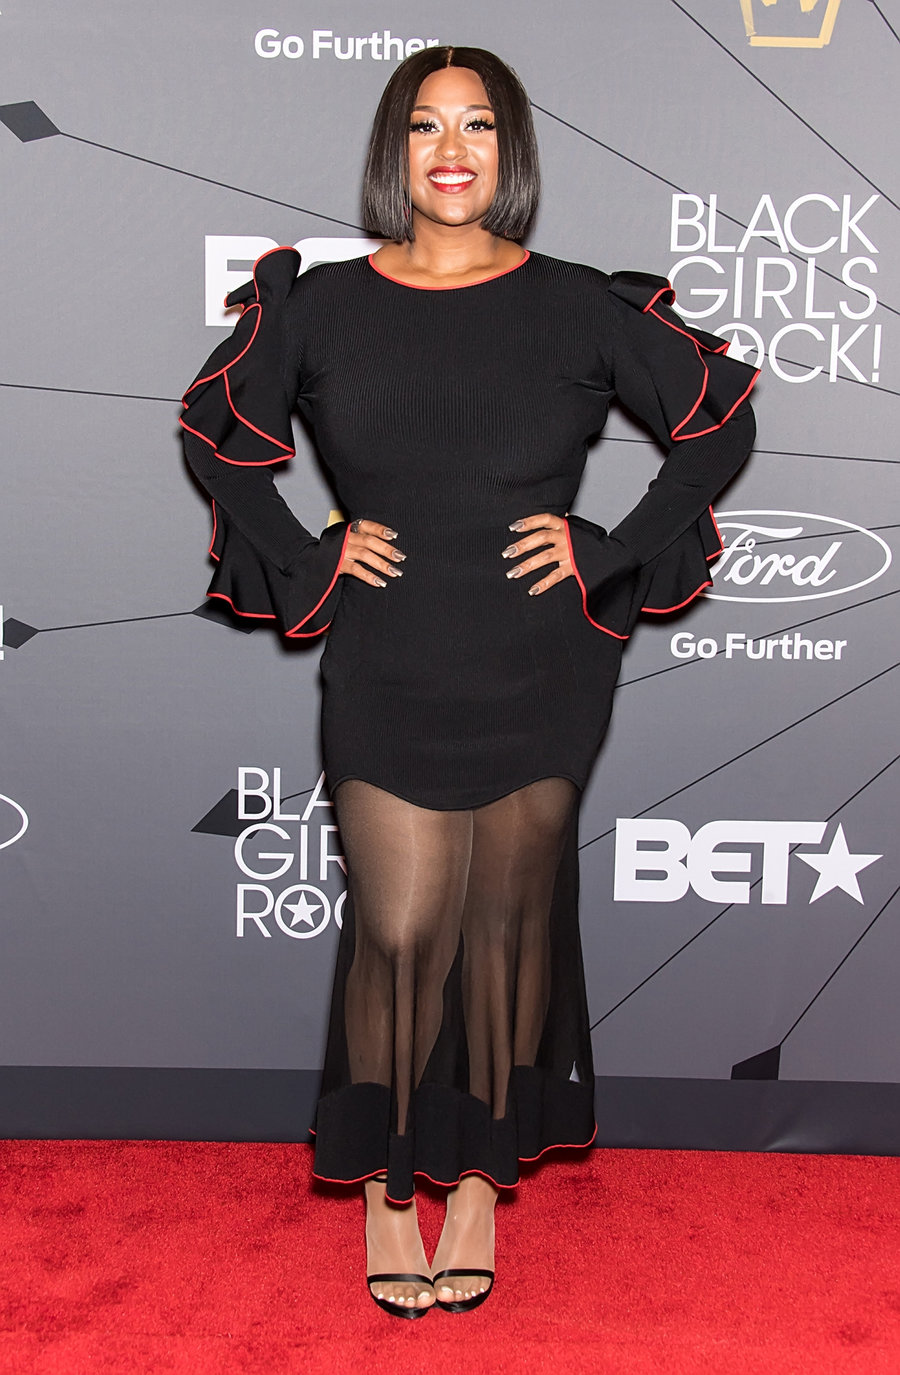 jazmine-sullivan-black-girls-rock-red-carpet-2018-billboard-1240